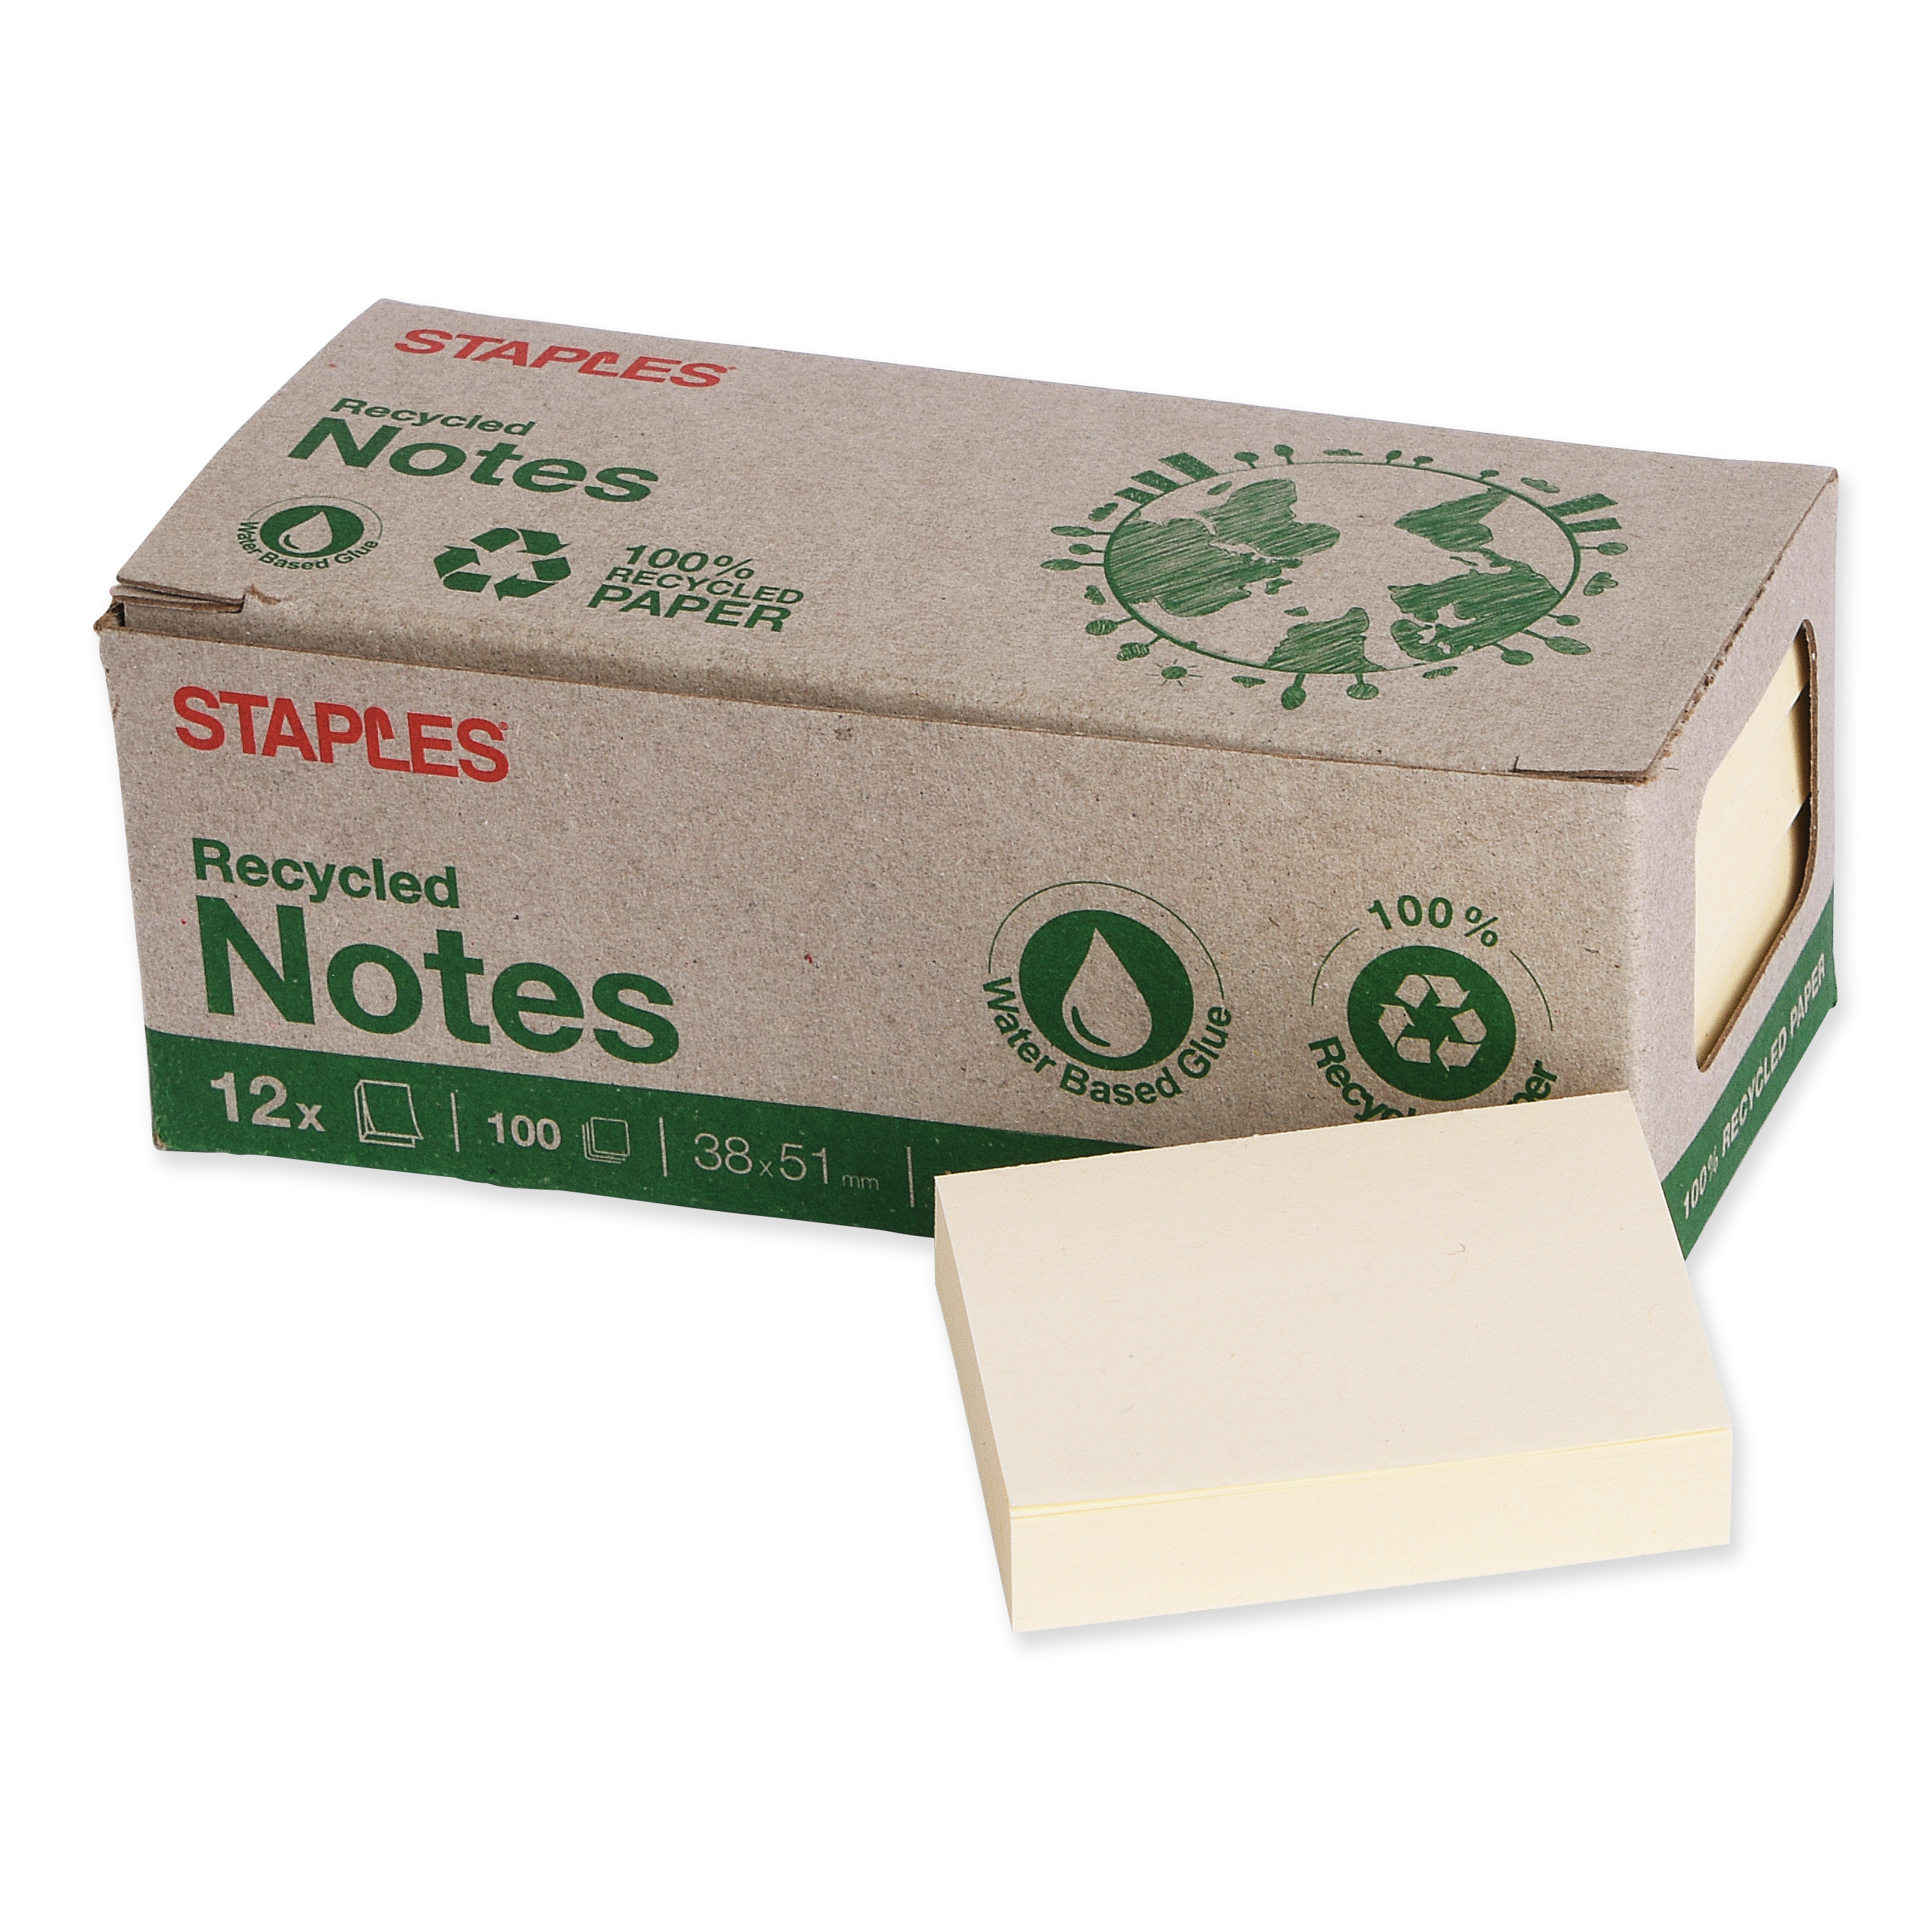 Staples self-adhesive notes recycling